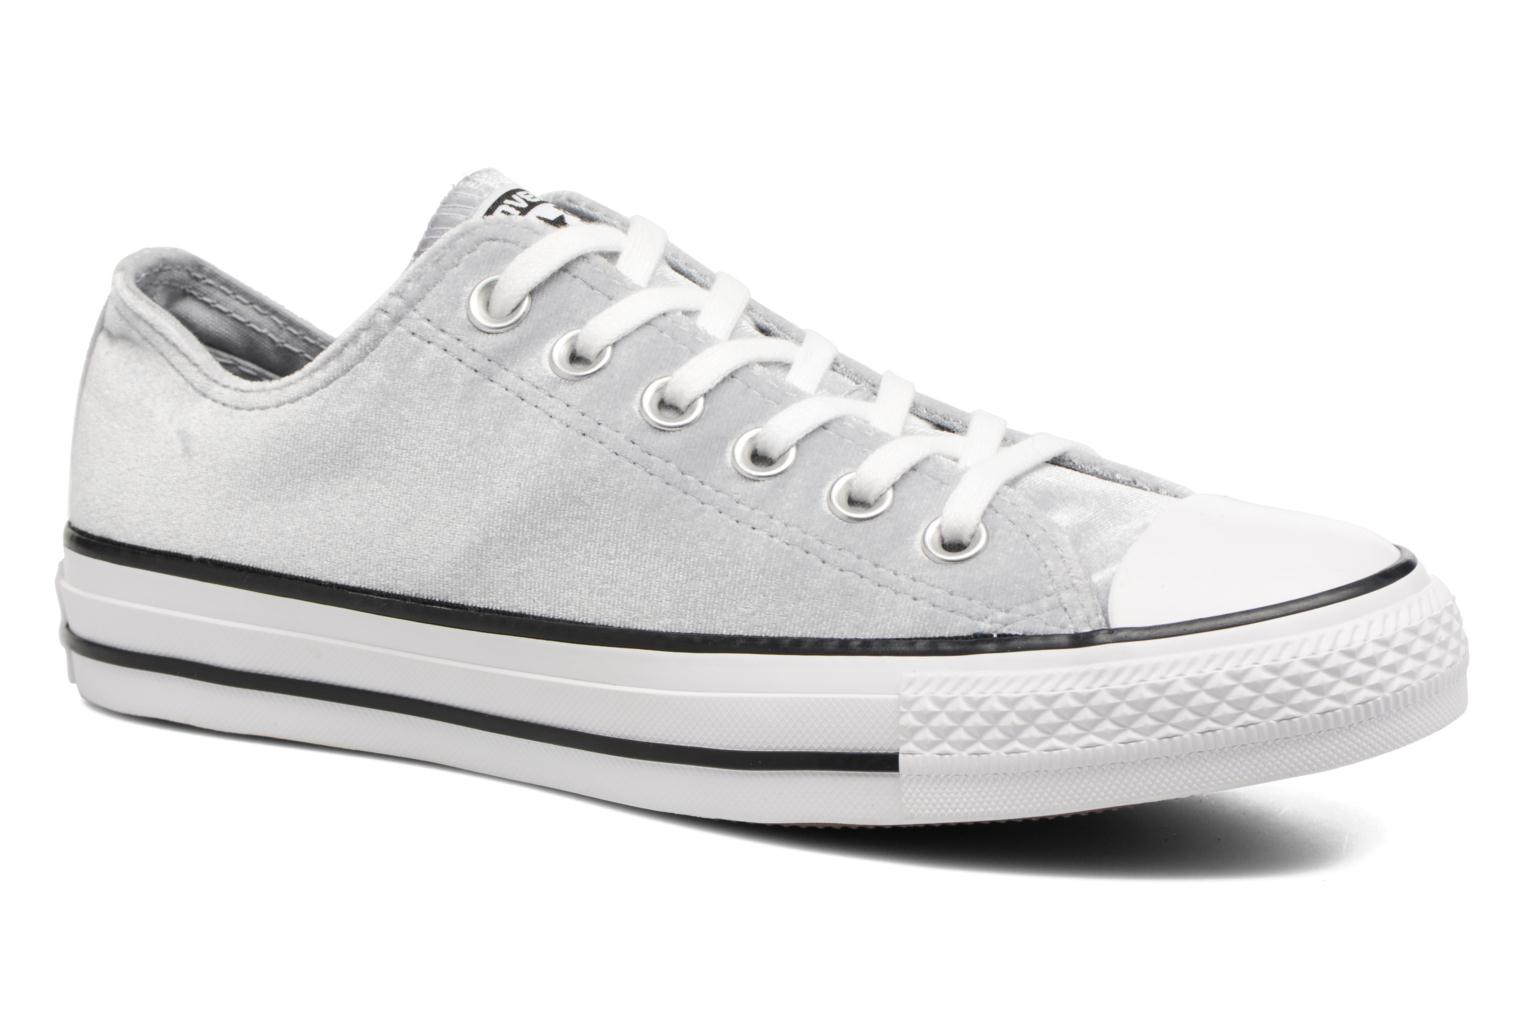 Marques Chaussure femme Converse femme Chuck Taylor All Star Velvet Ox Wolf Gray/White/White